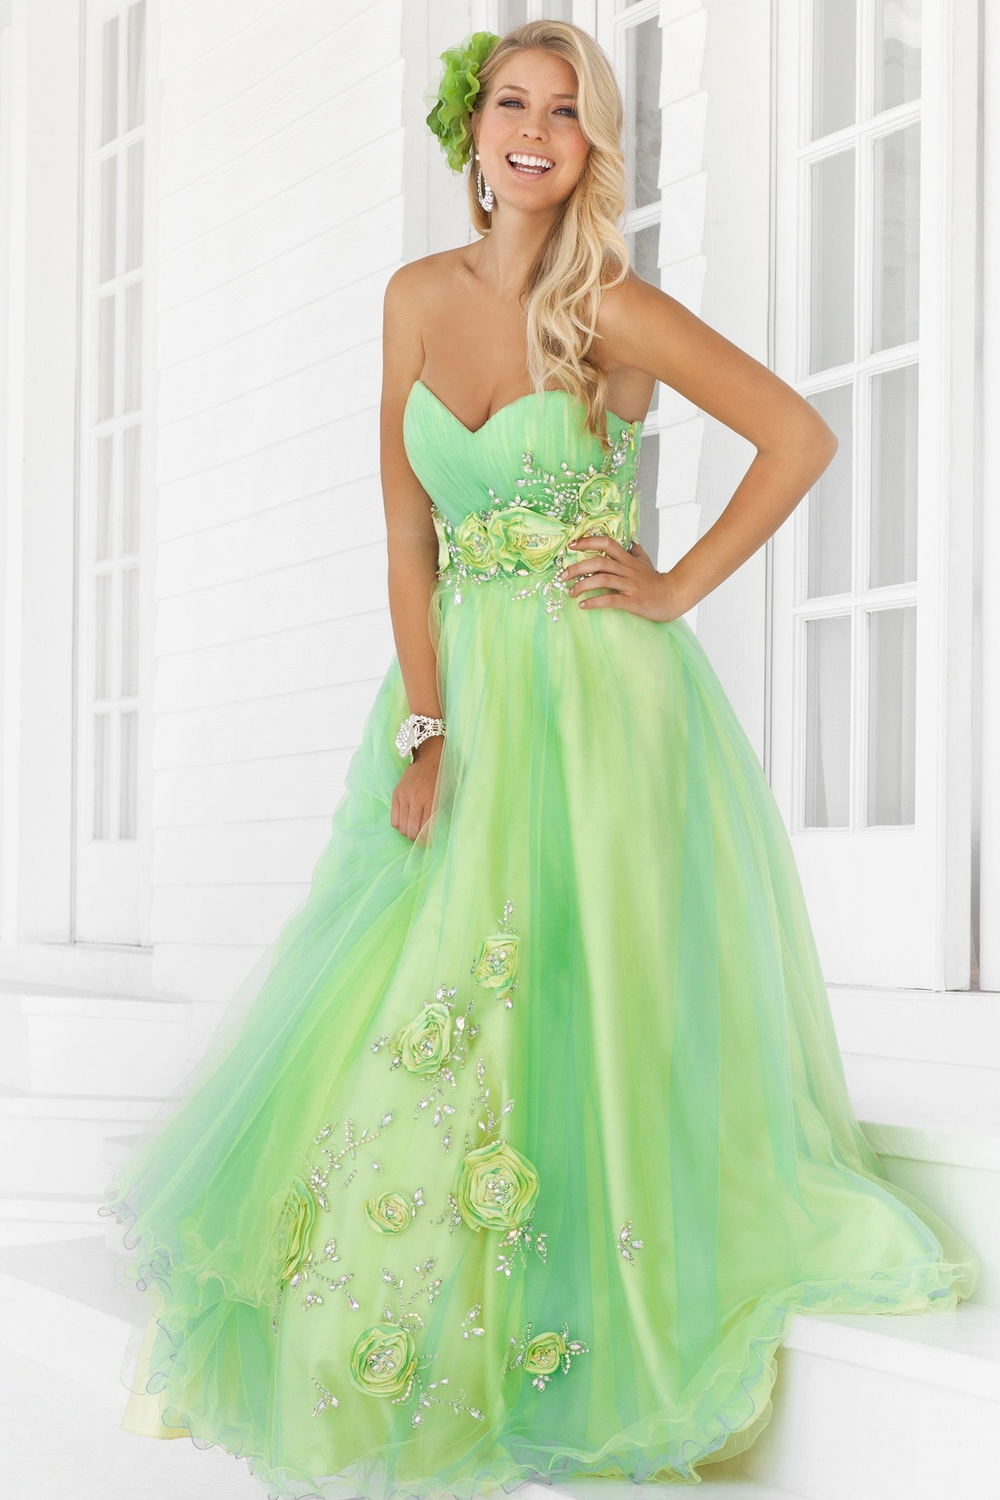 Choosing The Right Color For Your Prom Gown Wordpress